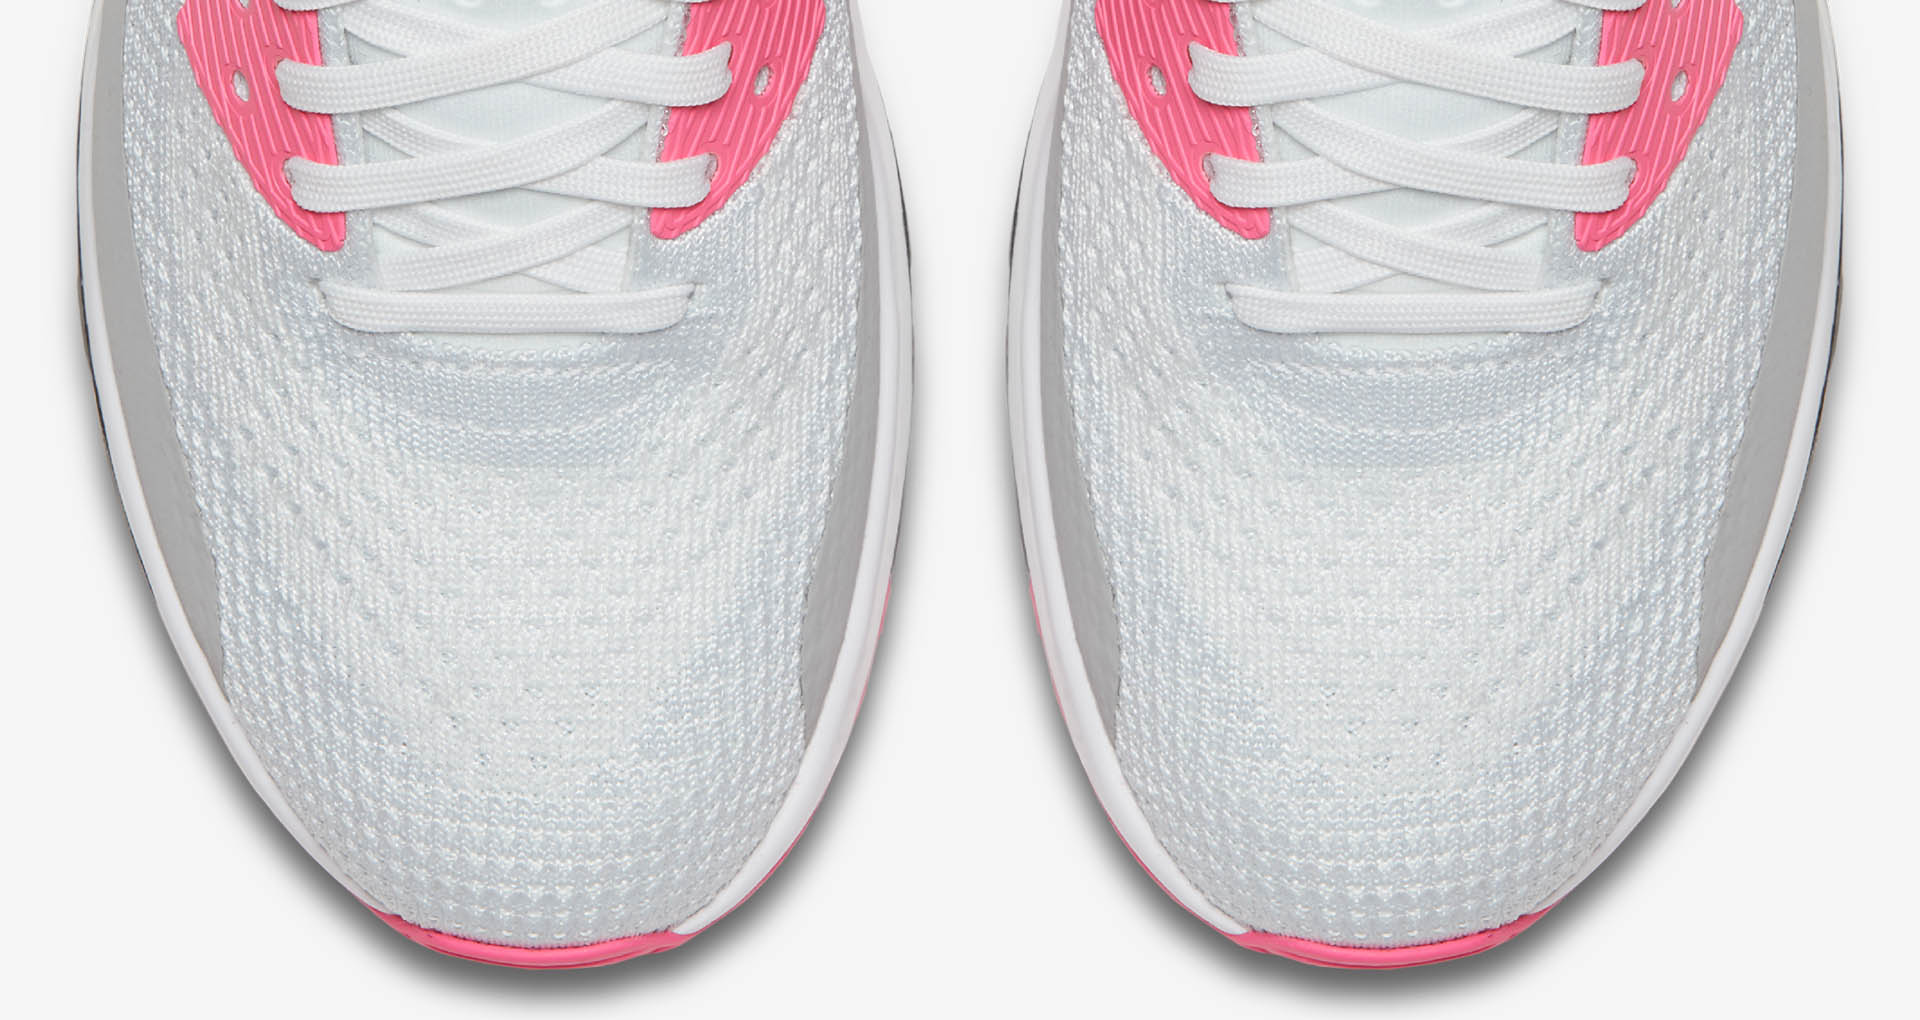 wmns-nike-air-max-90-ultra-2-flyknit-laser-pink-concord-9